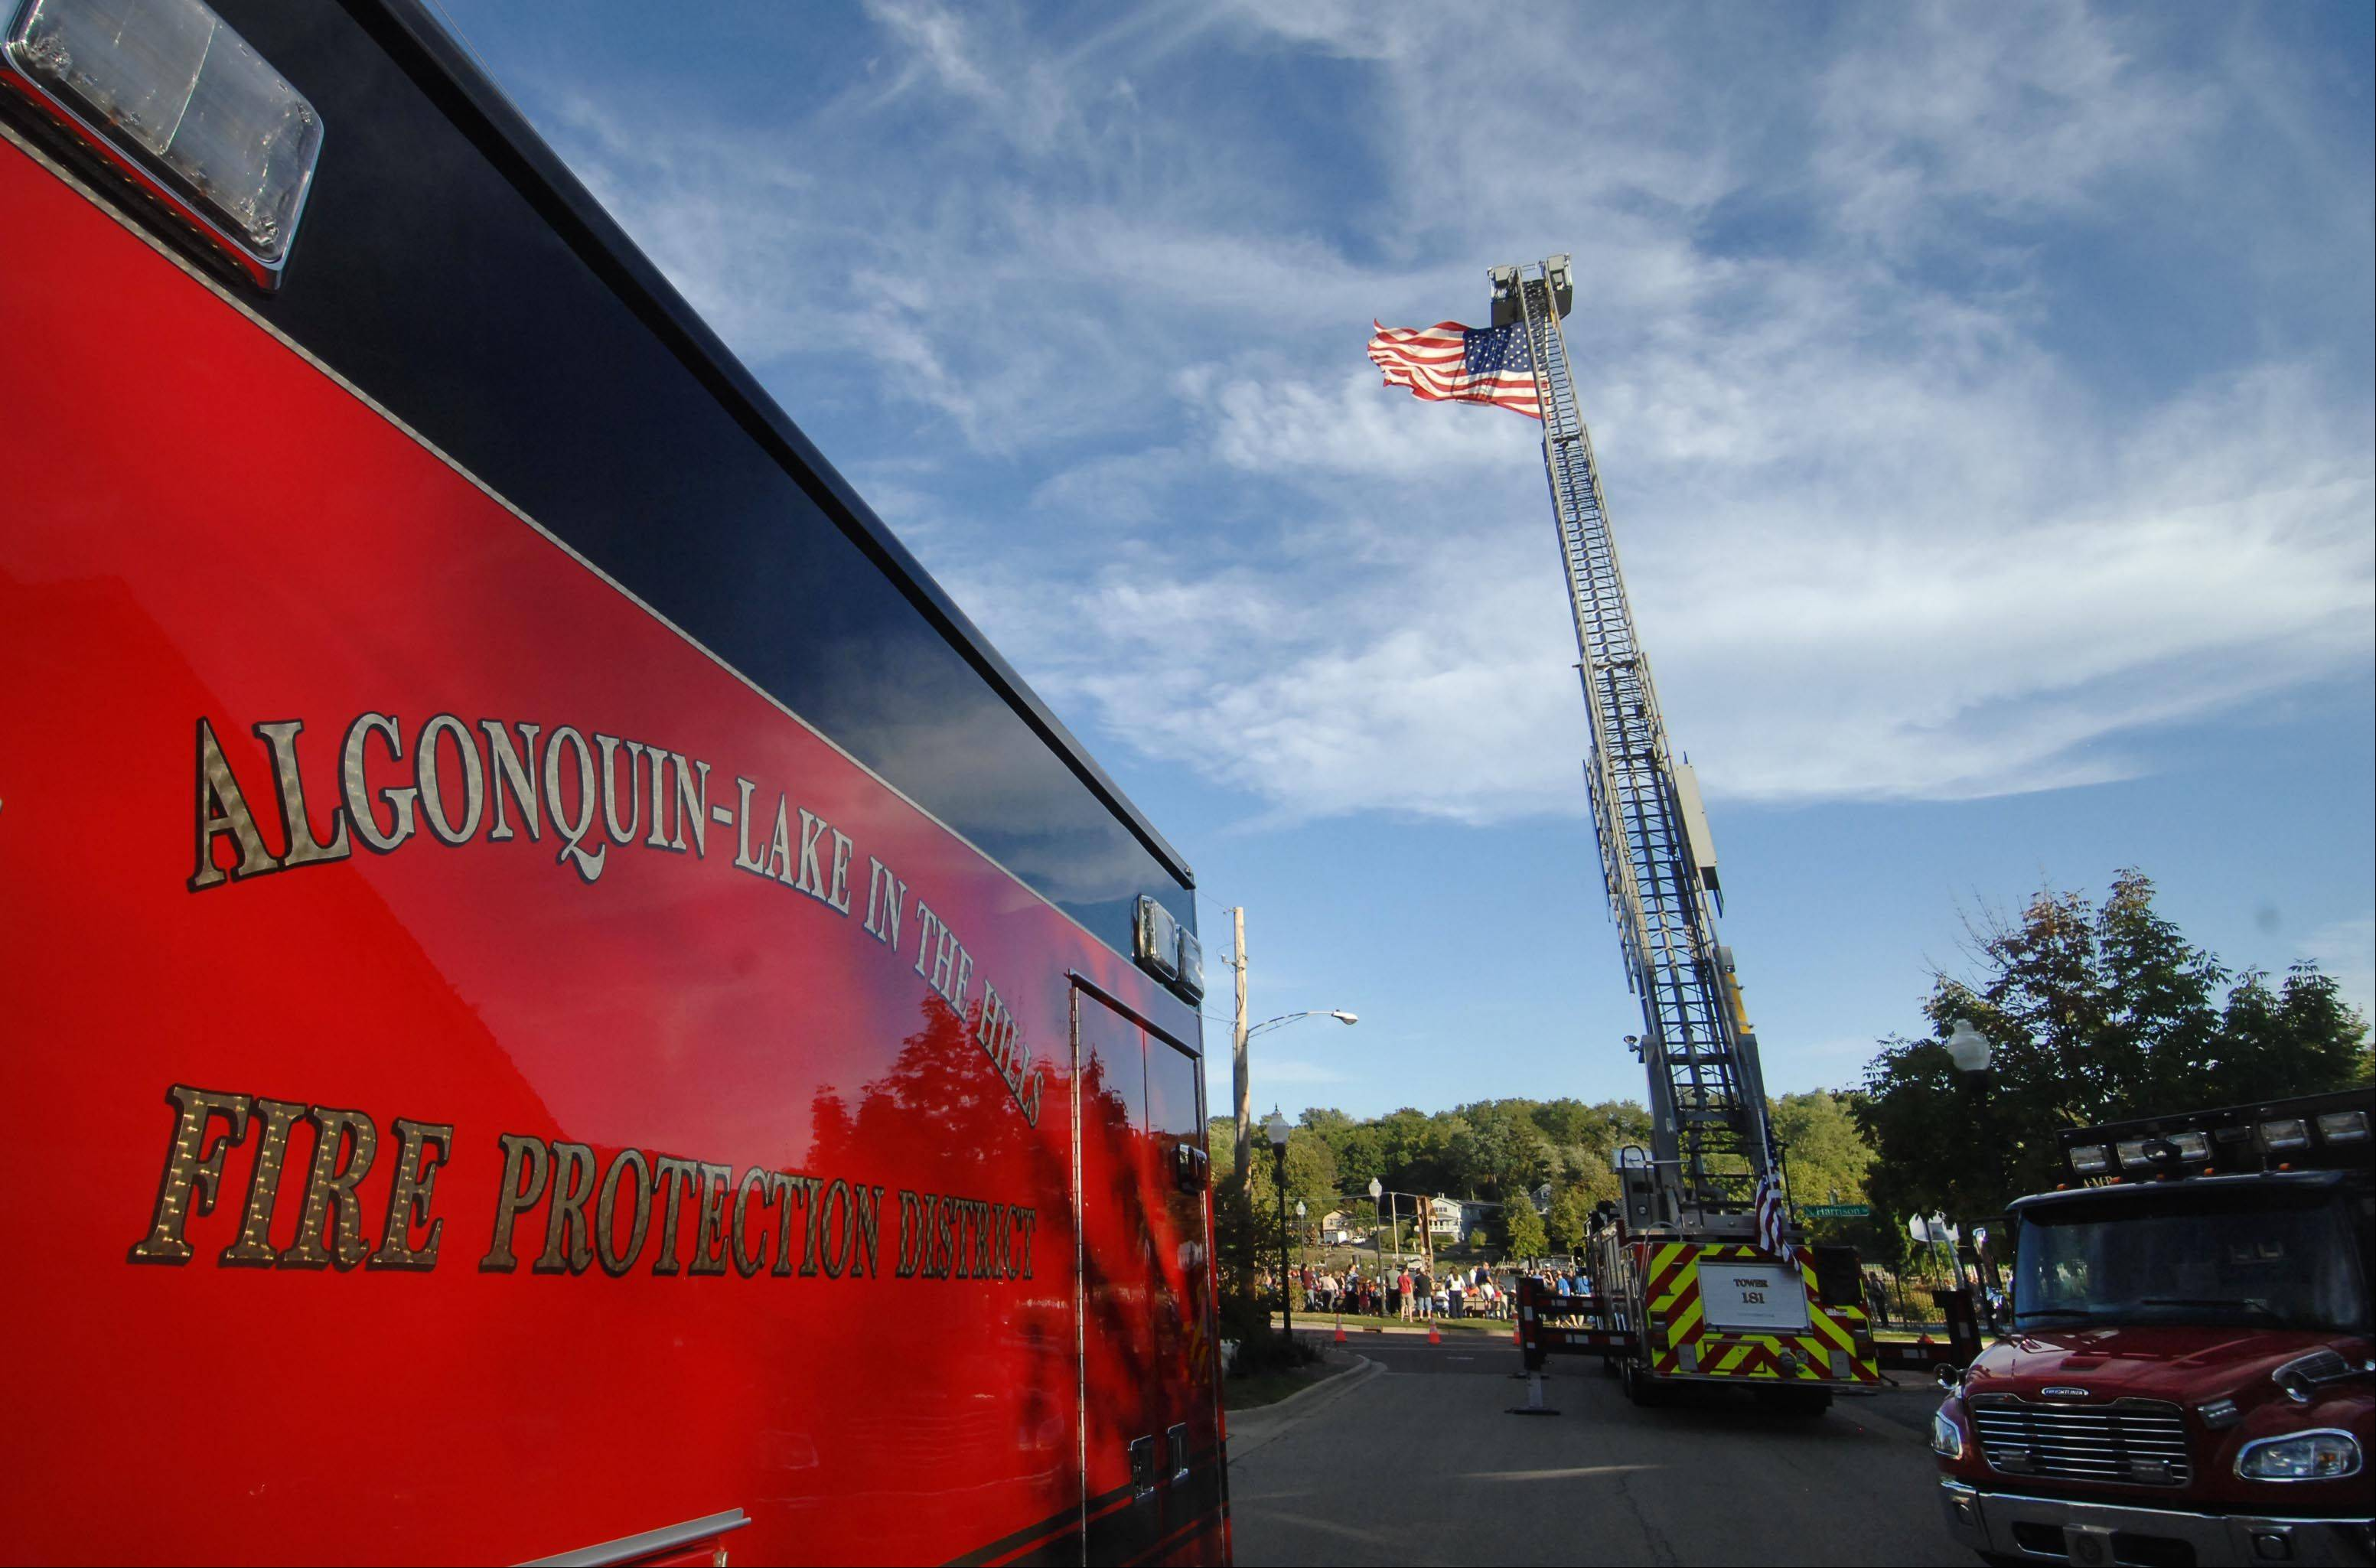 An Algonquin-Lake in the Hills Fire Protection District ladder truck displays a flag Tuesday in Algonquin during a Firefighter Memorial Dedication. The families of two firefighters killed while on duty in the last 50 years were honored also at the ceremony in Riverfront Park.